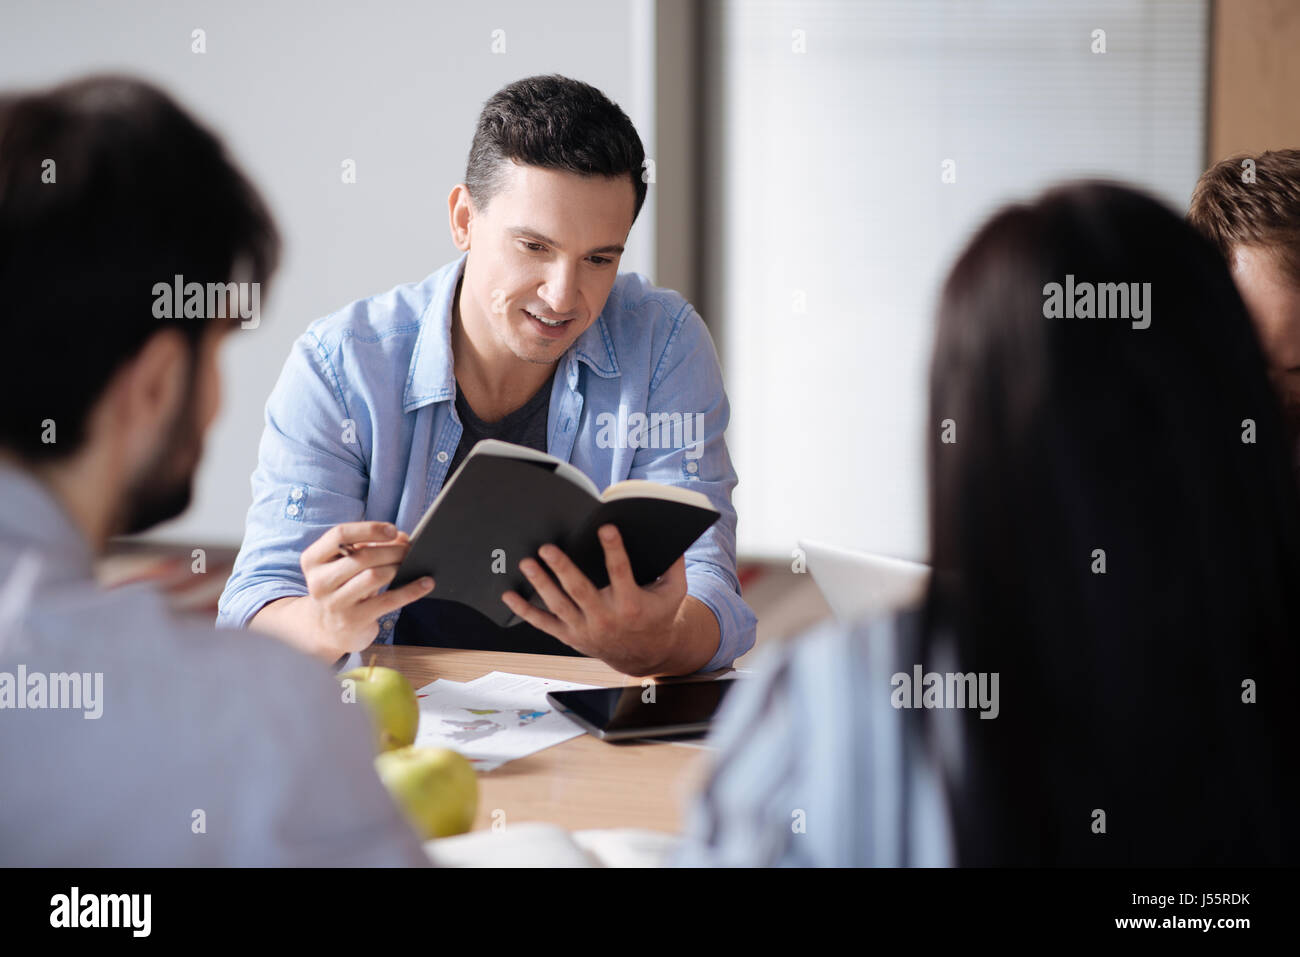 Attractive young man looking into his notebook - Stock Image